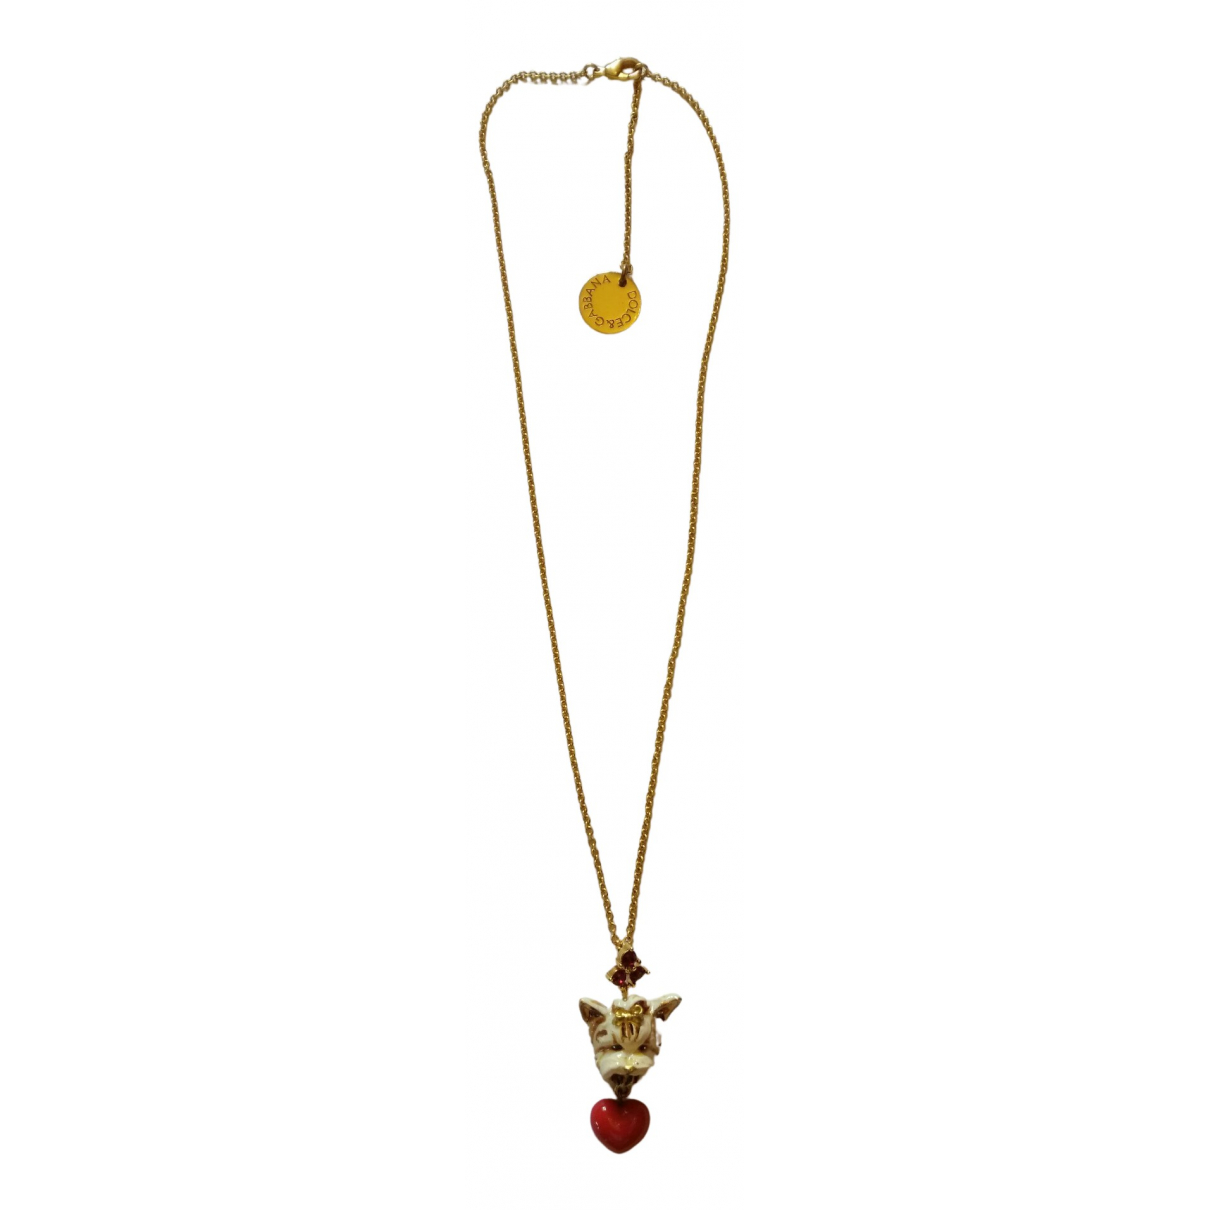 Dolce & Gabbana N Gold Crystal necklace for Women N